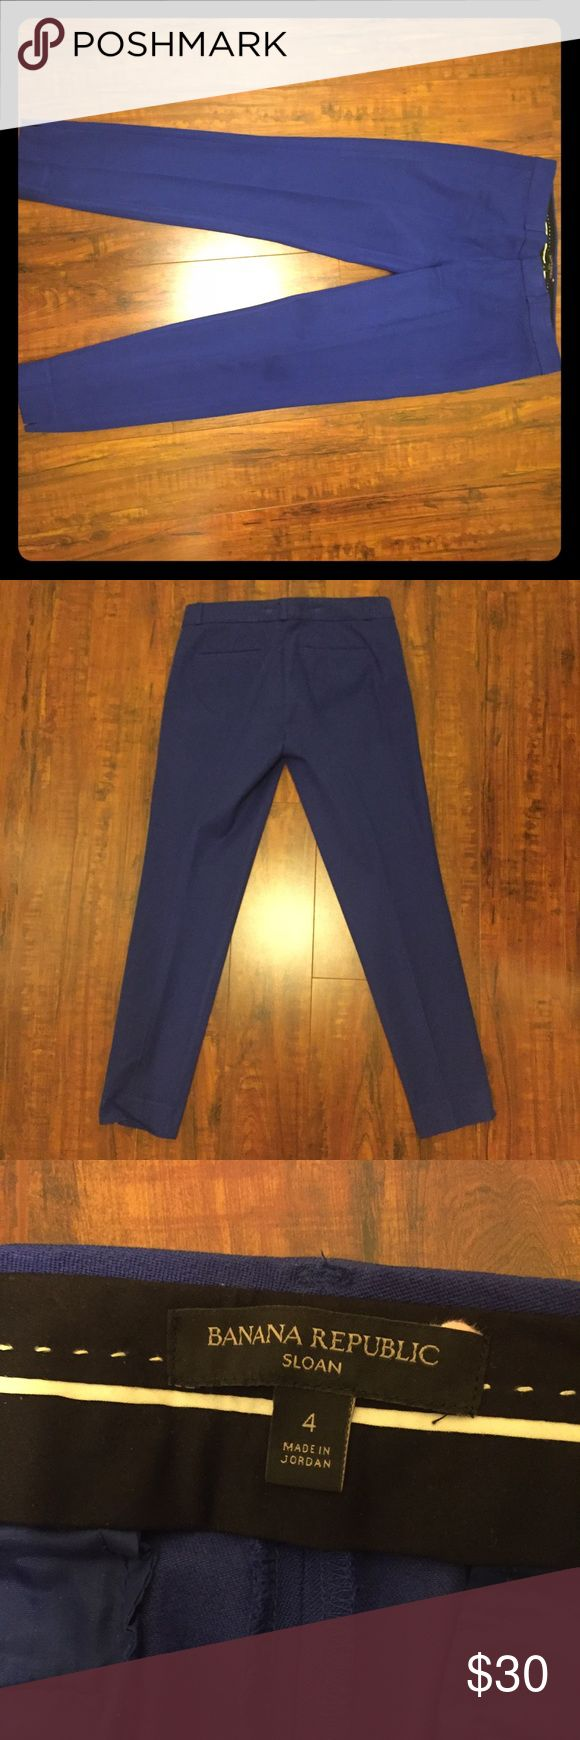 Banana Republic electric blue Sloan ankle pants Banana Republic electric blue Sloan ankle pants. Great stretch. Open to offers Banana Republic Pants Ankle & Cropped